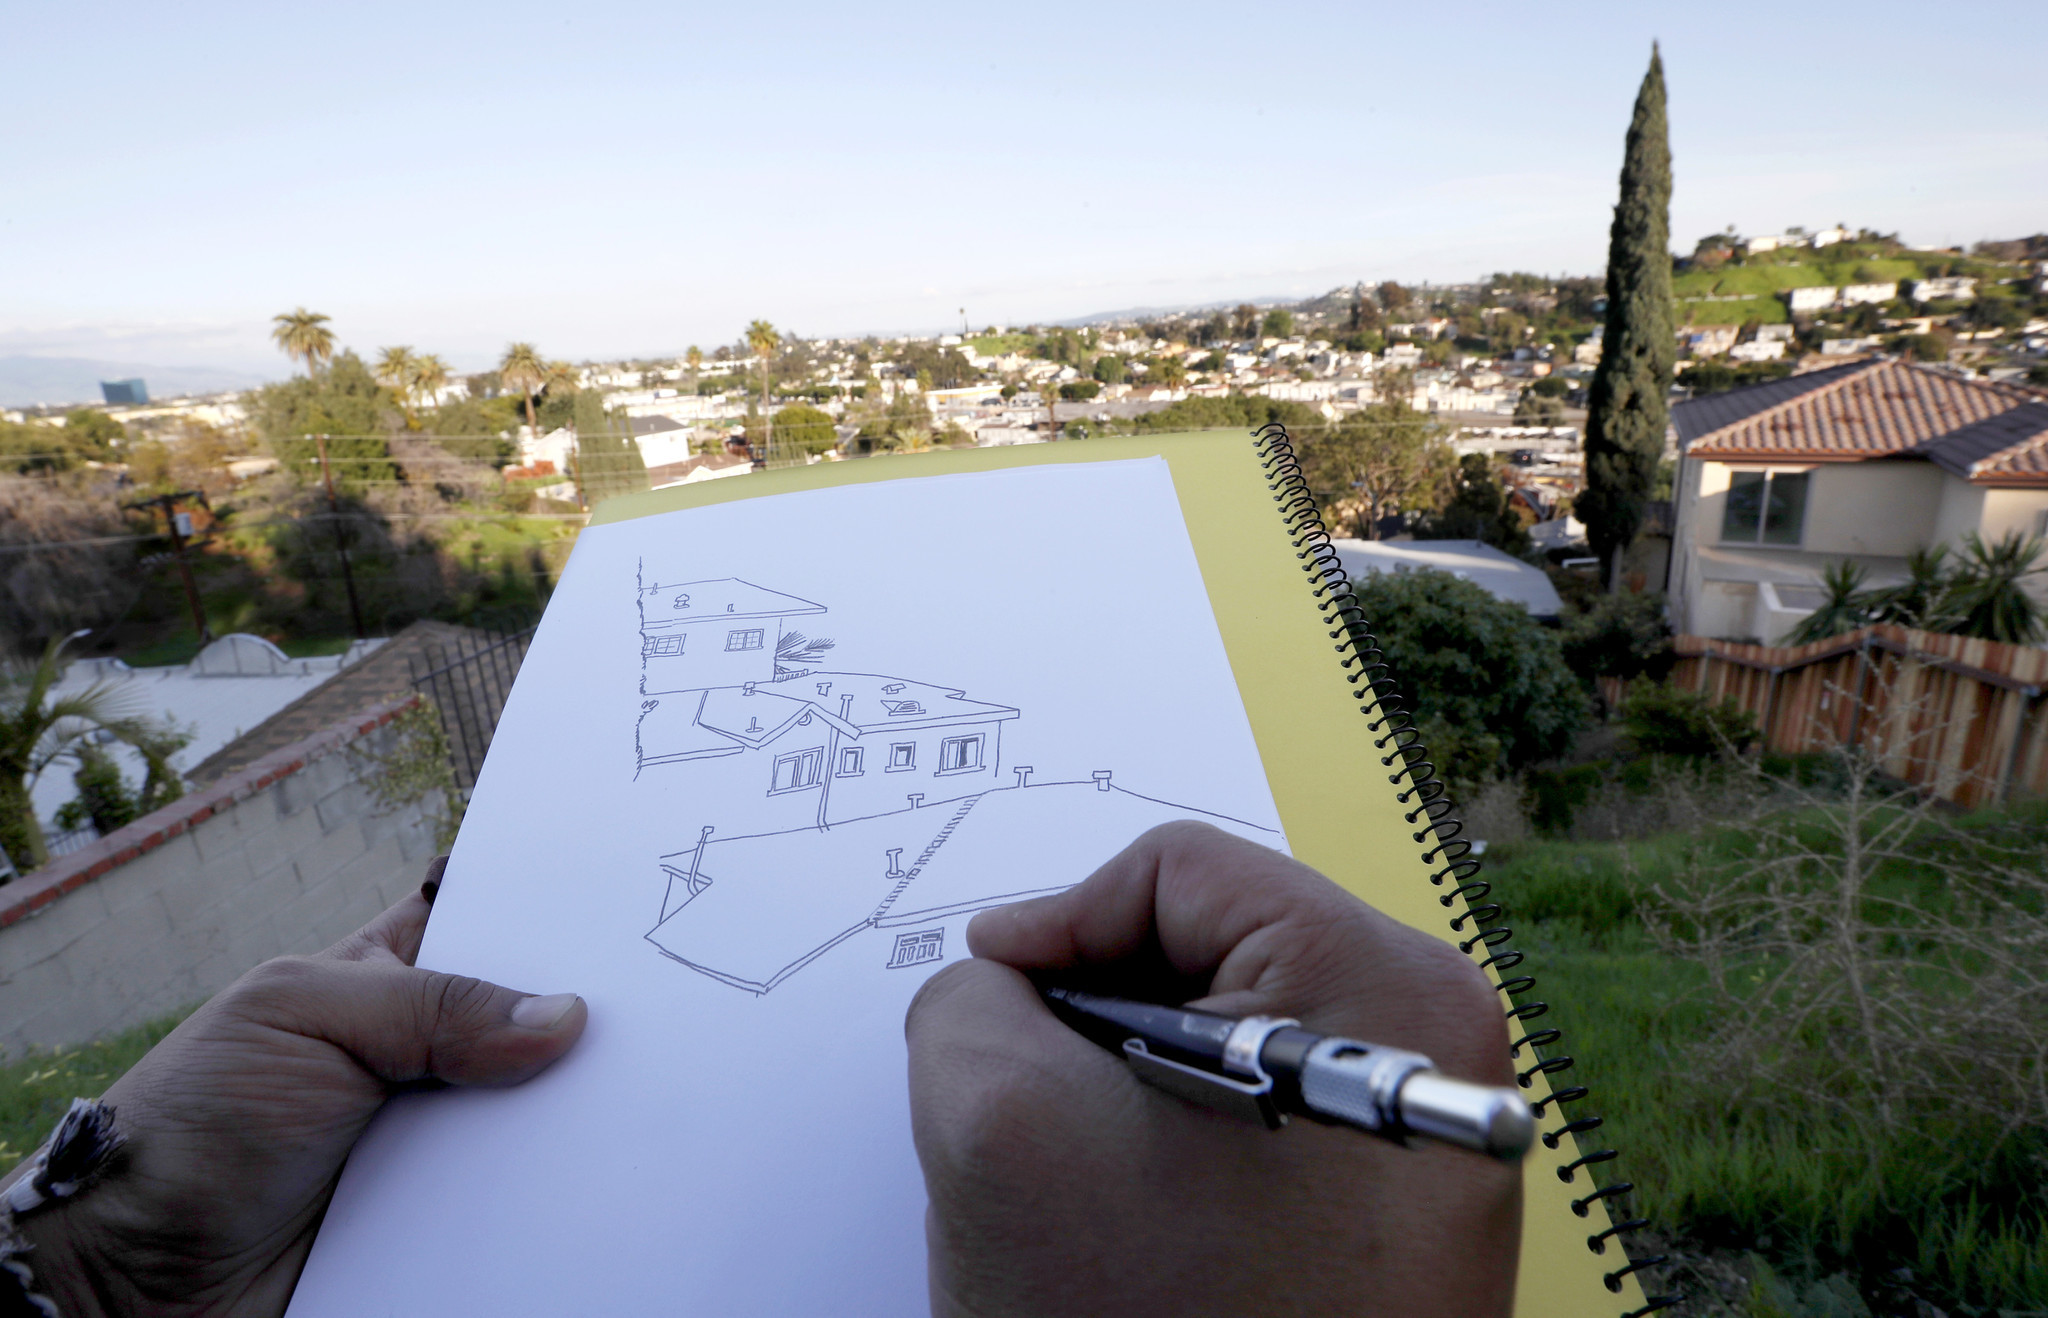 LOS ANGELES, CALIF. - MAR 27, 2018. Manuel Lopez, an artist who makes pencil drawings of hillside c